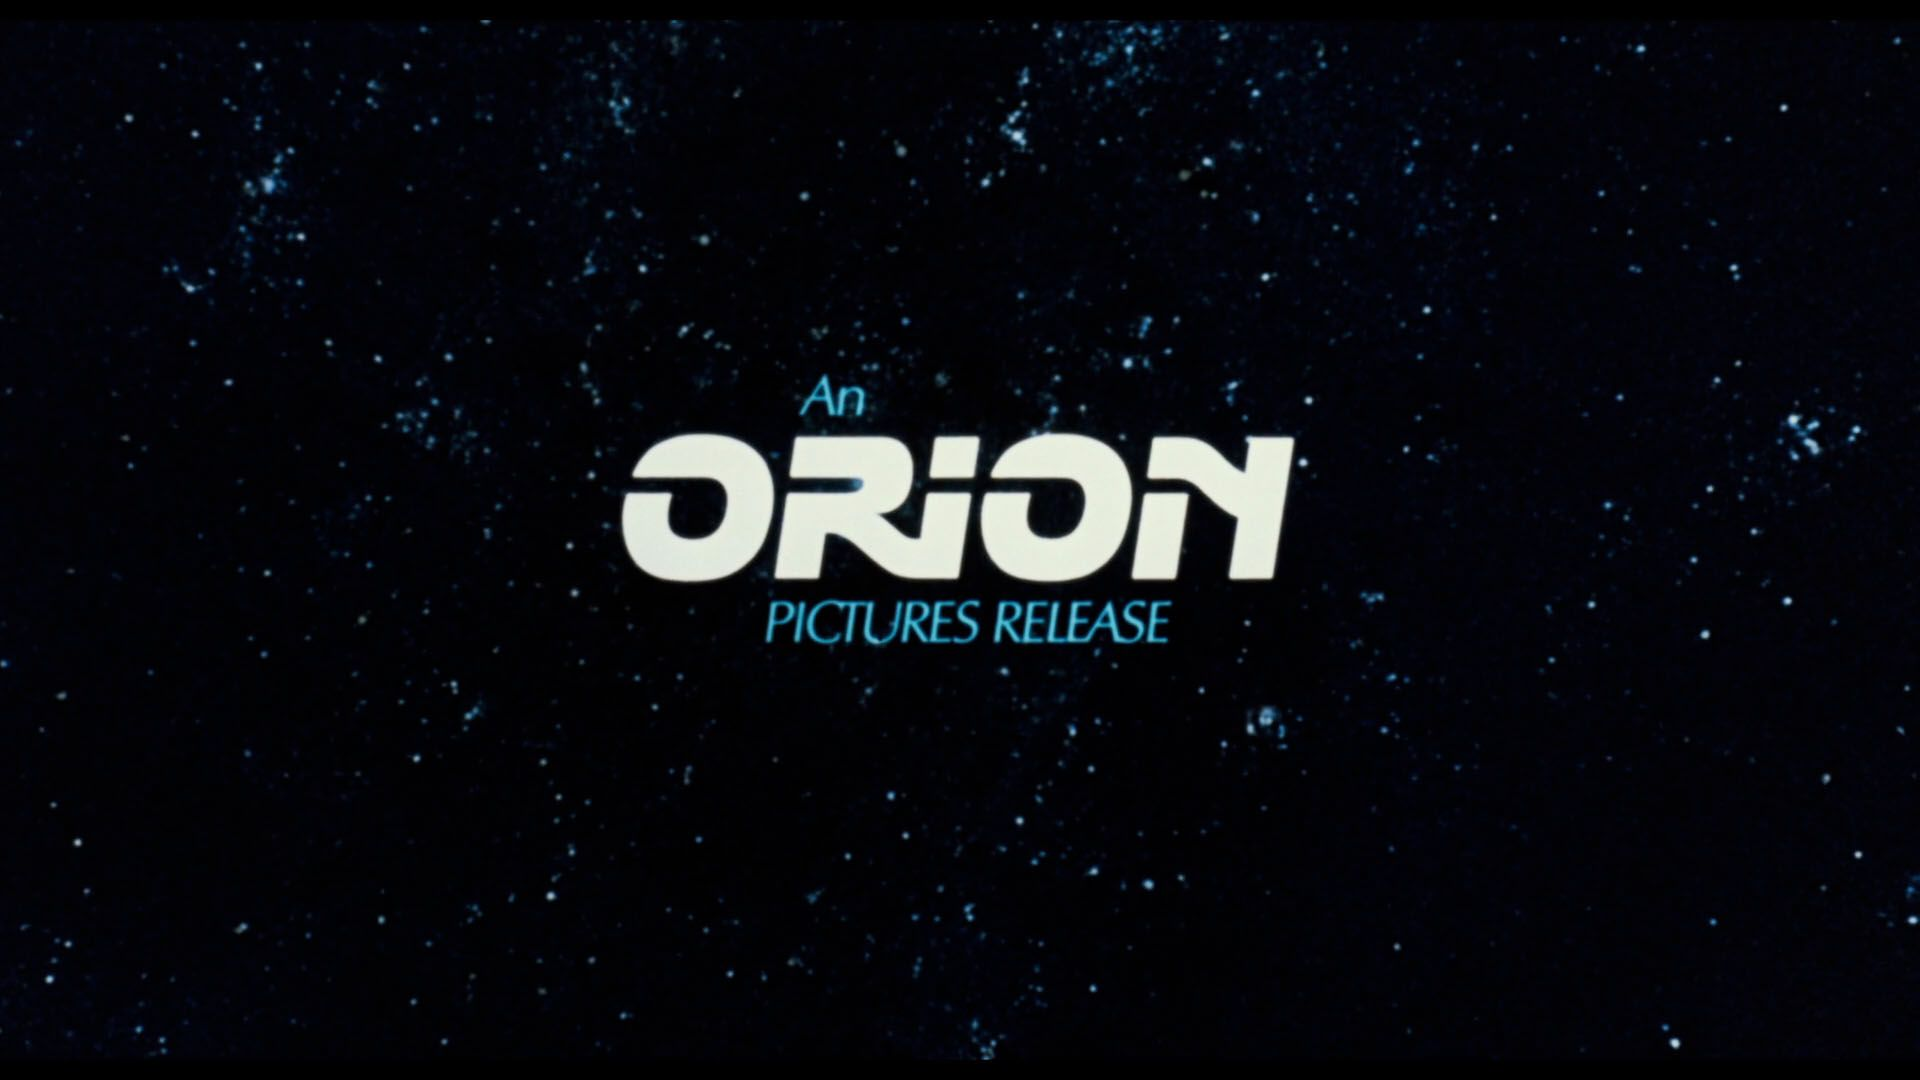 Orion Pictures From The Terminator 1984